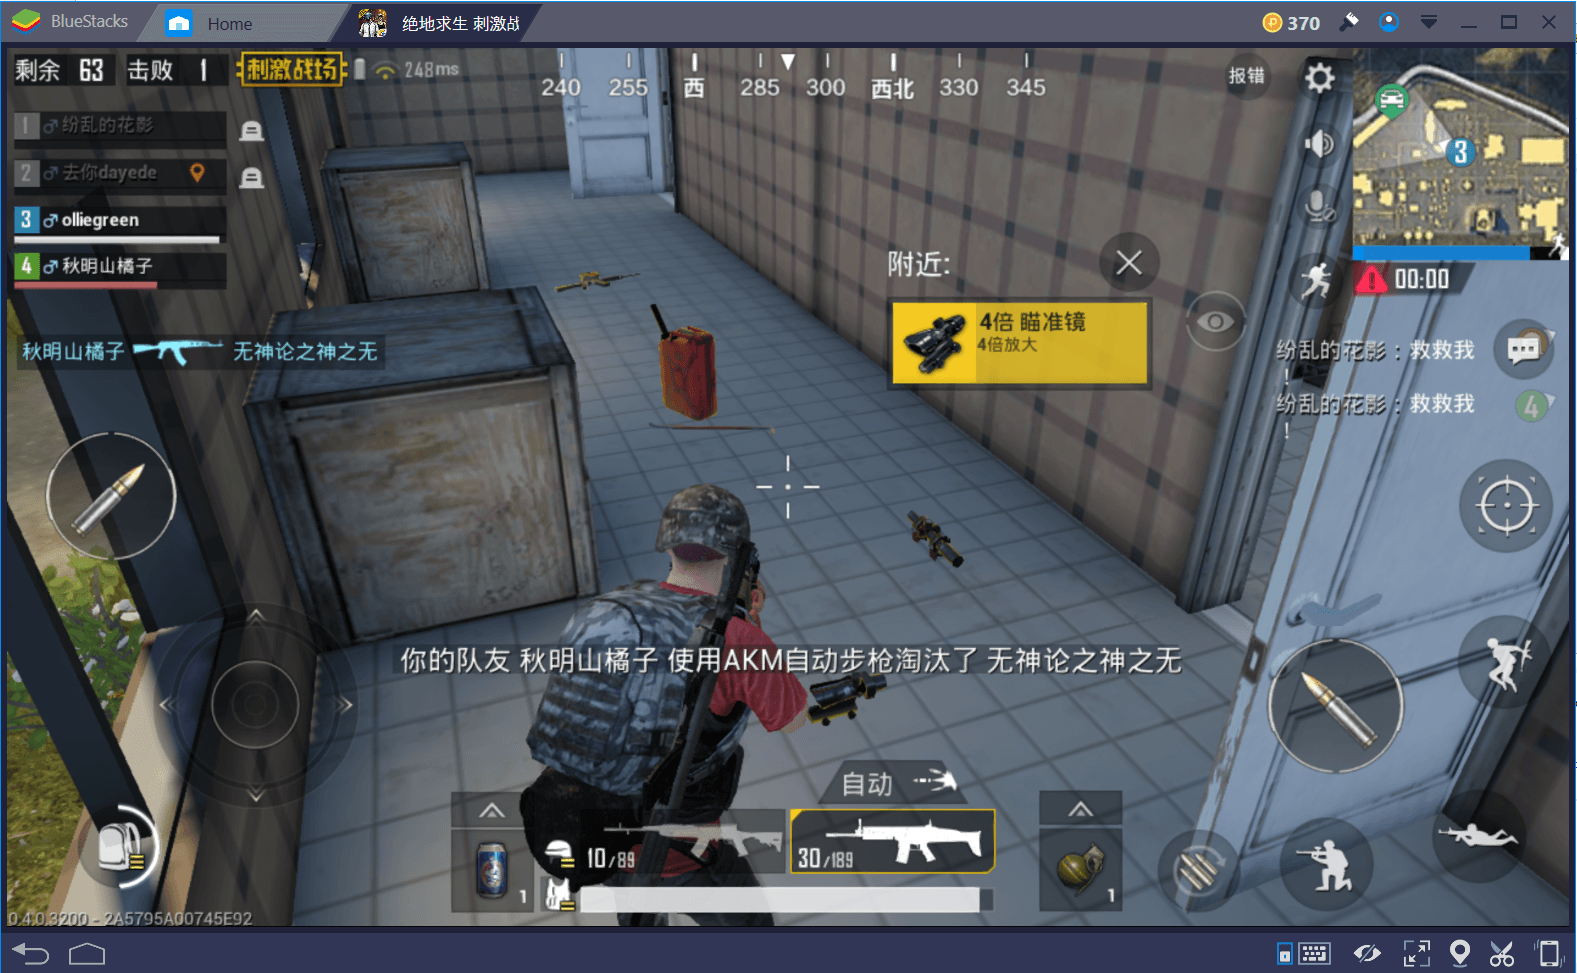 How To Better In Pubg: Expert PUBG Mobile Sniping Guide